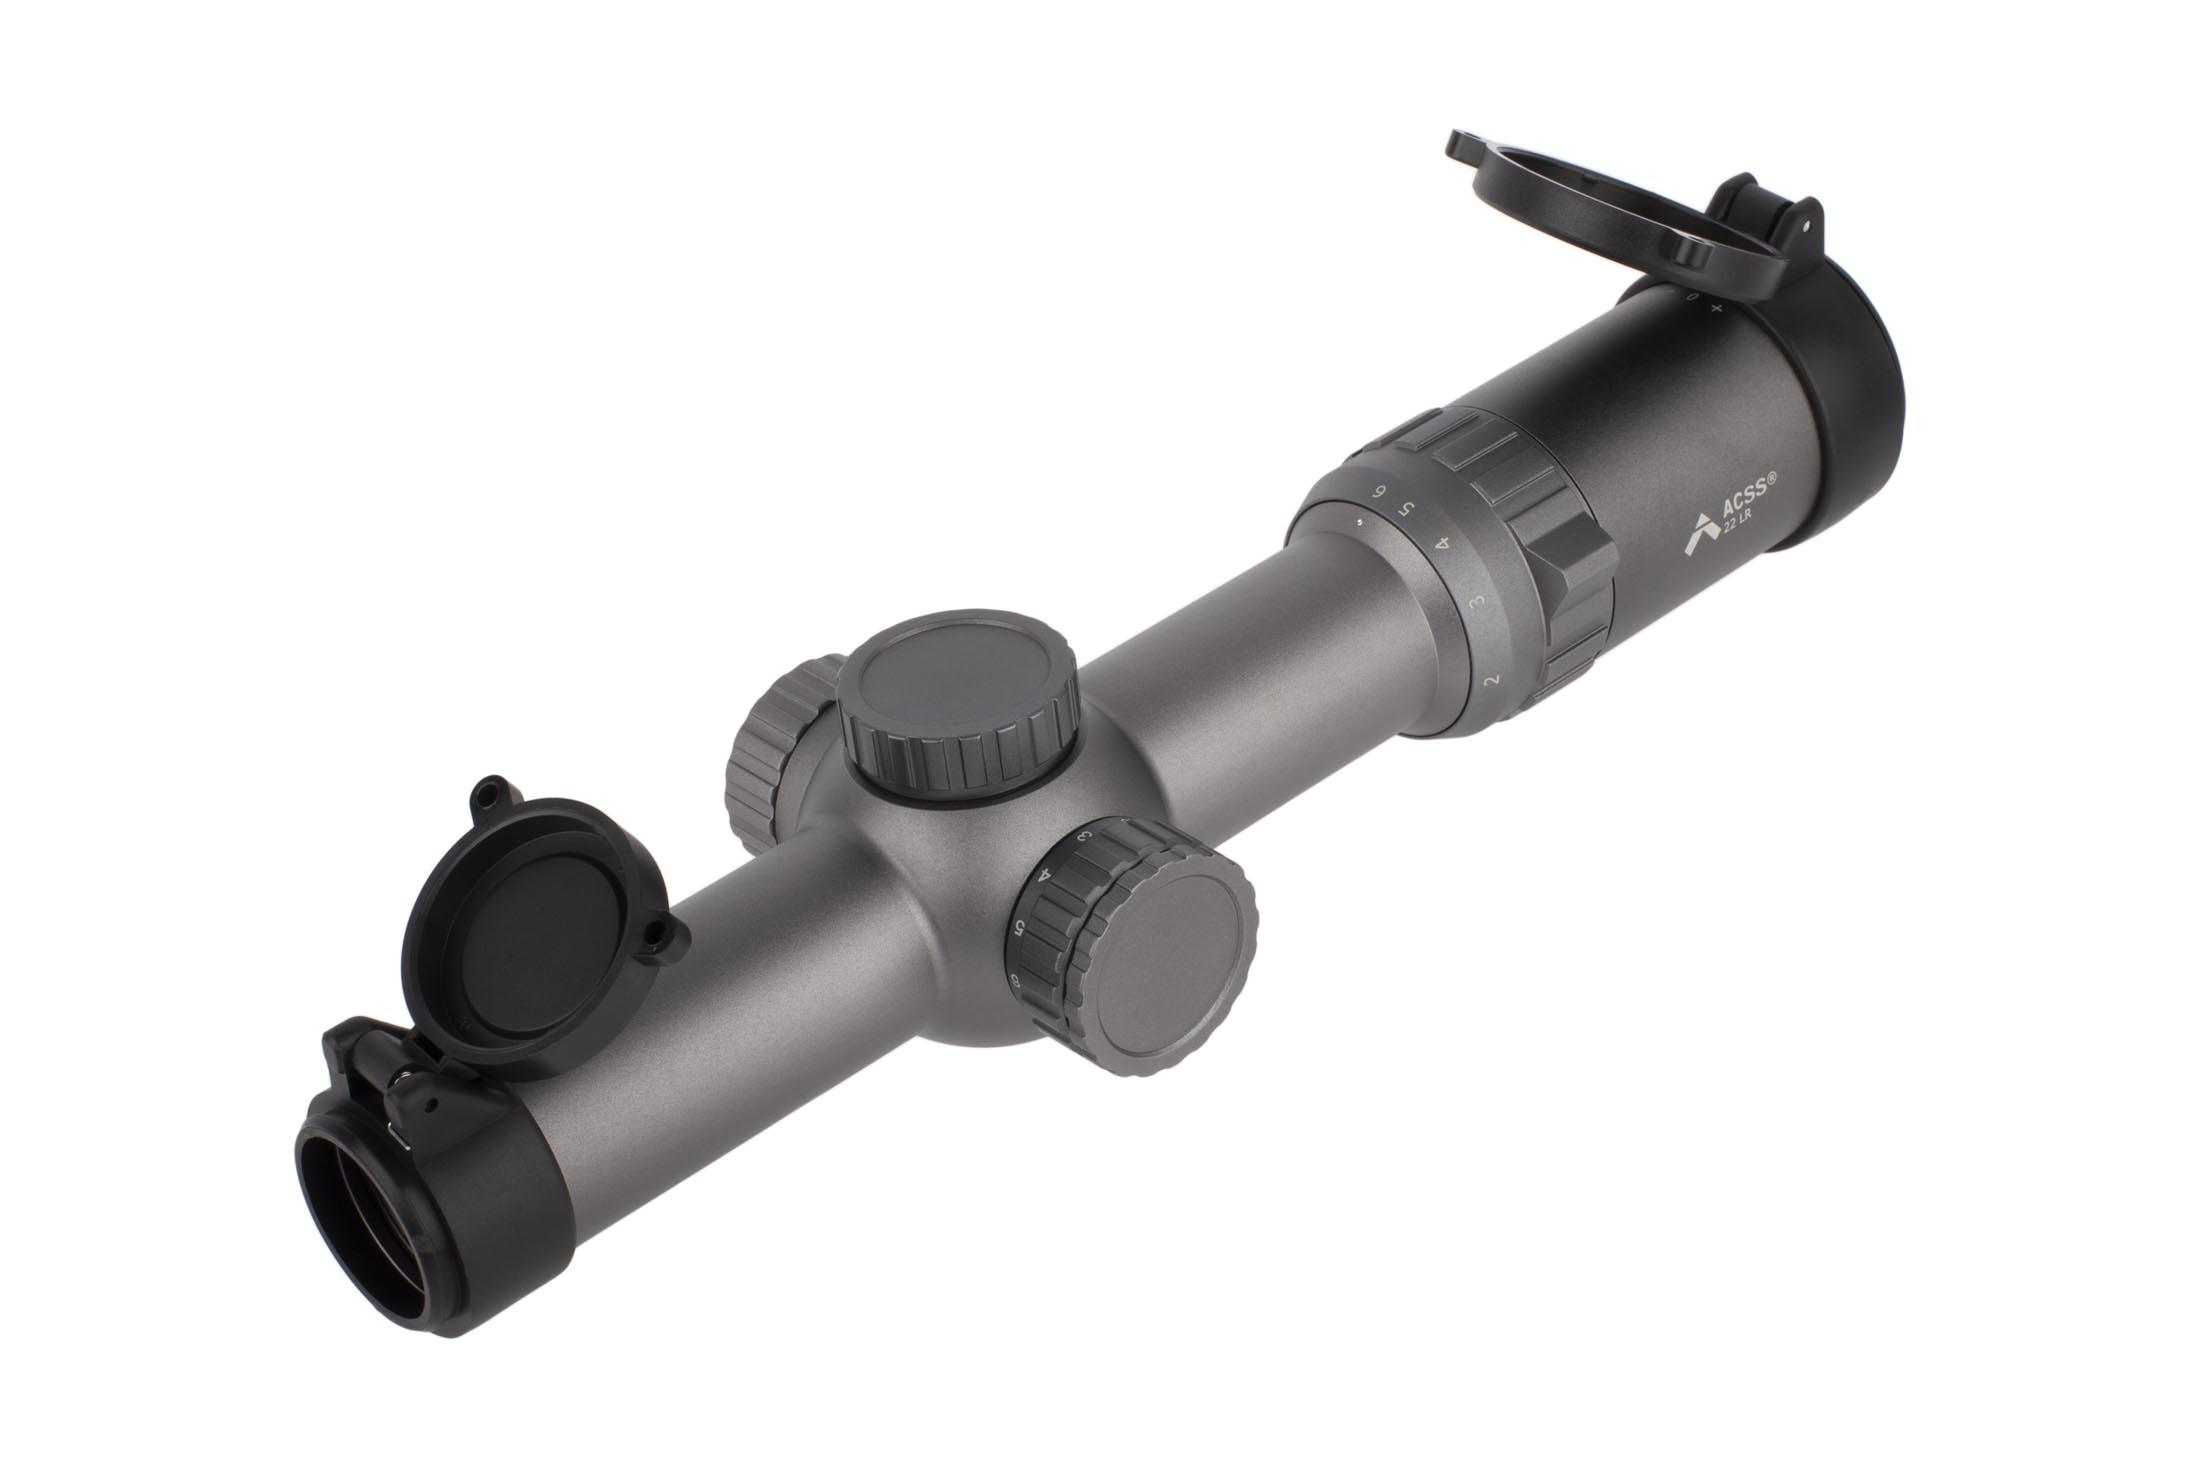 Primary Arms 1-6X24mm SFP Rifle Scope GEN III - Illuminated ACSS 22LR Reticle - Wolf Grey